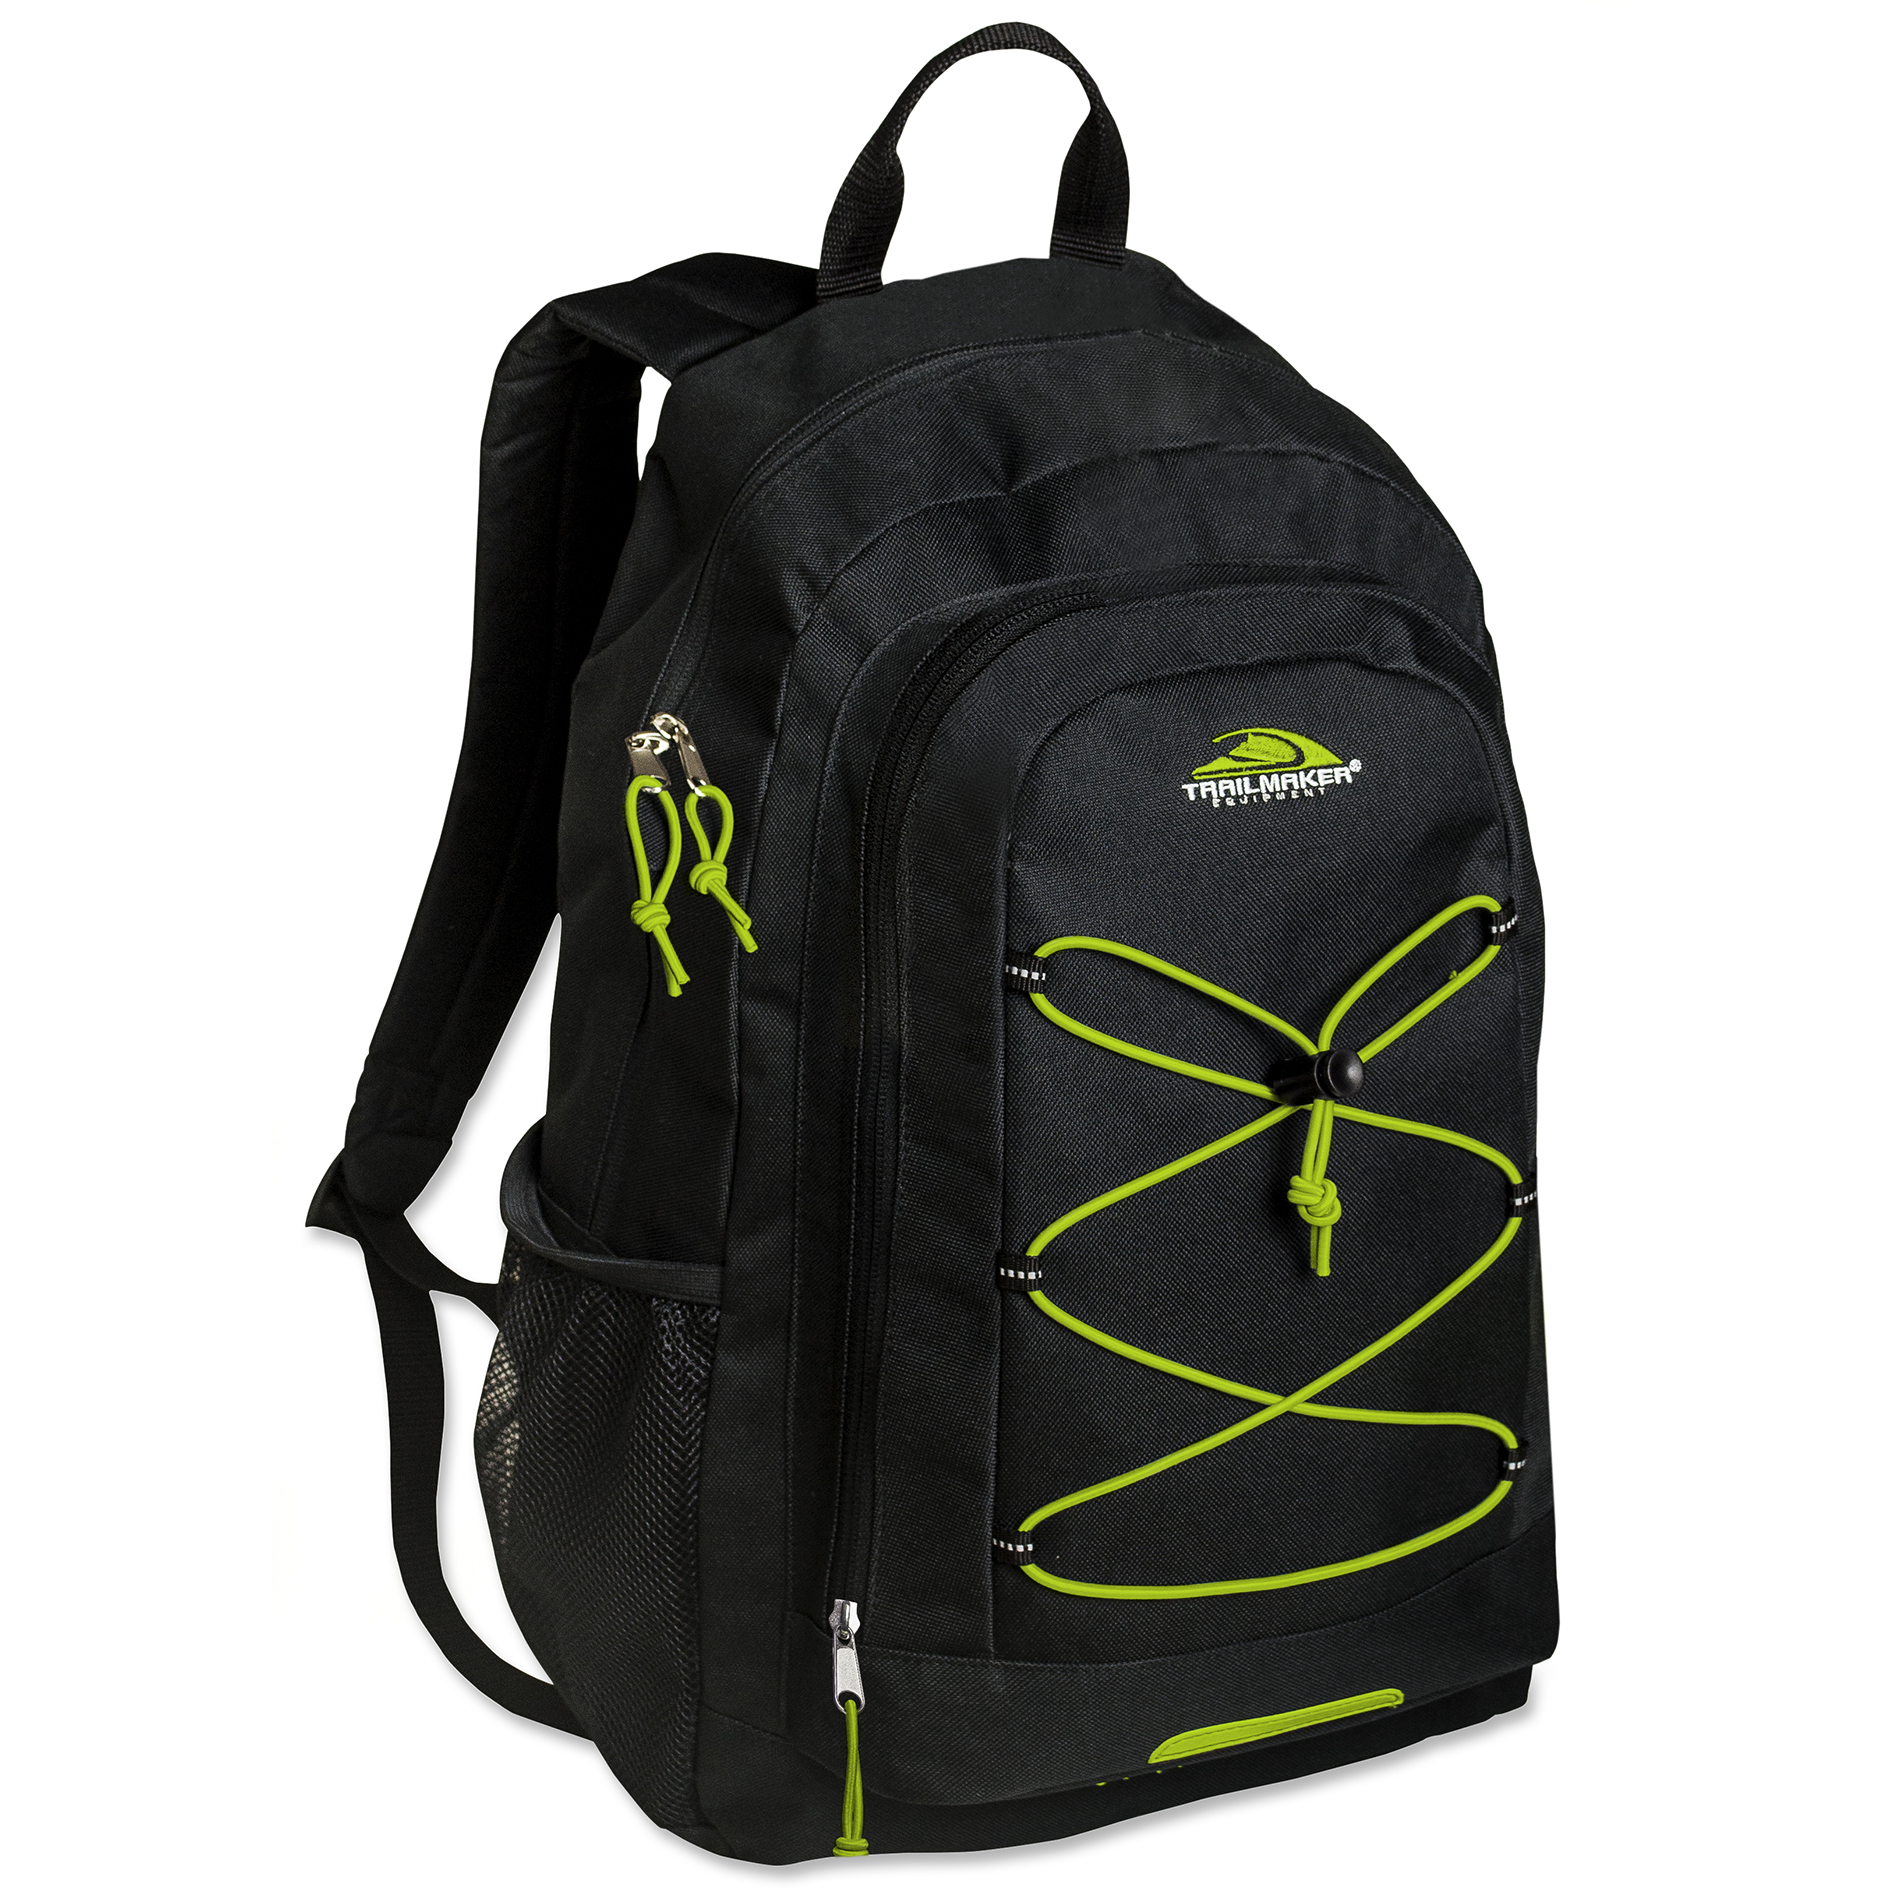 Travel Bag Kmart Trailmaker Boys Bungee Front Backpack Home Luggage